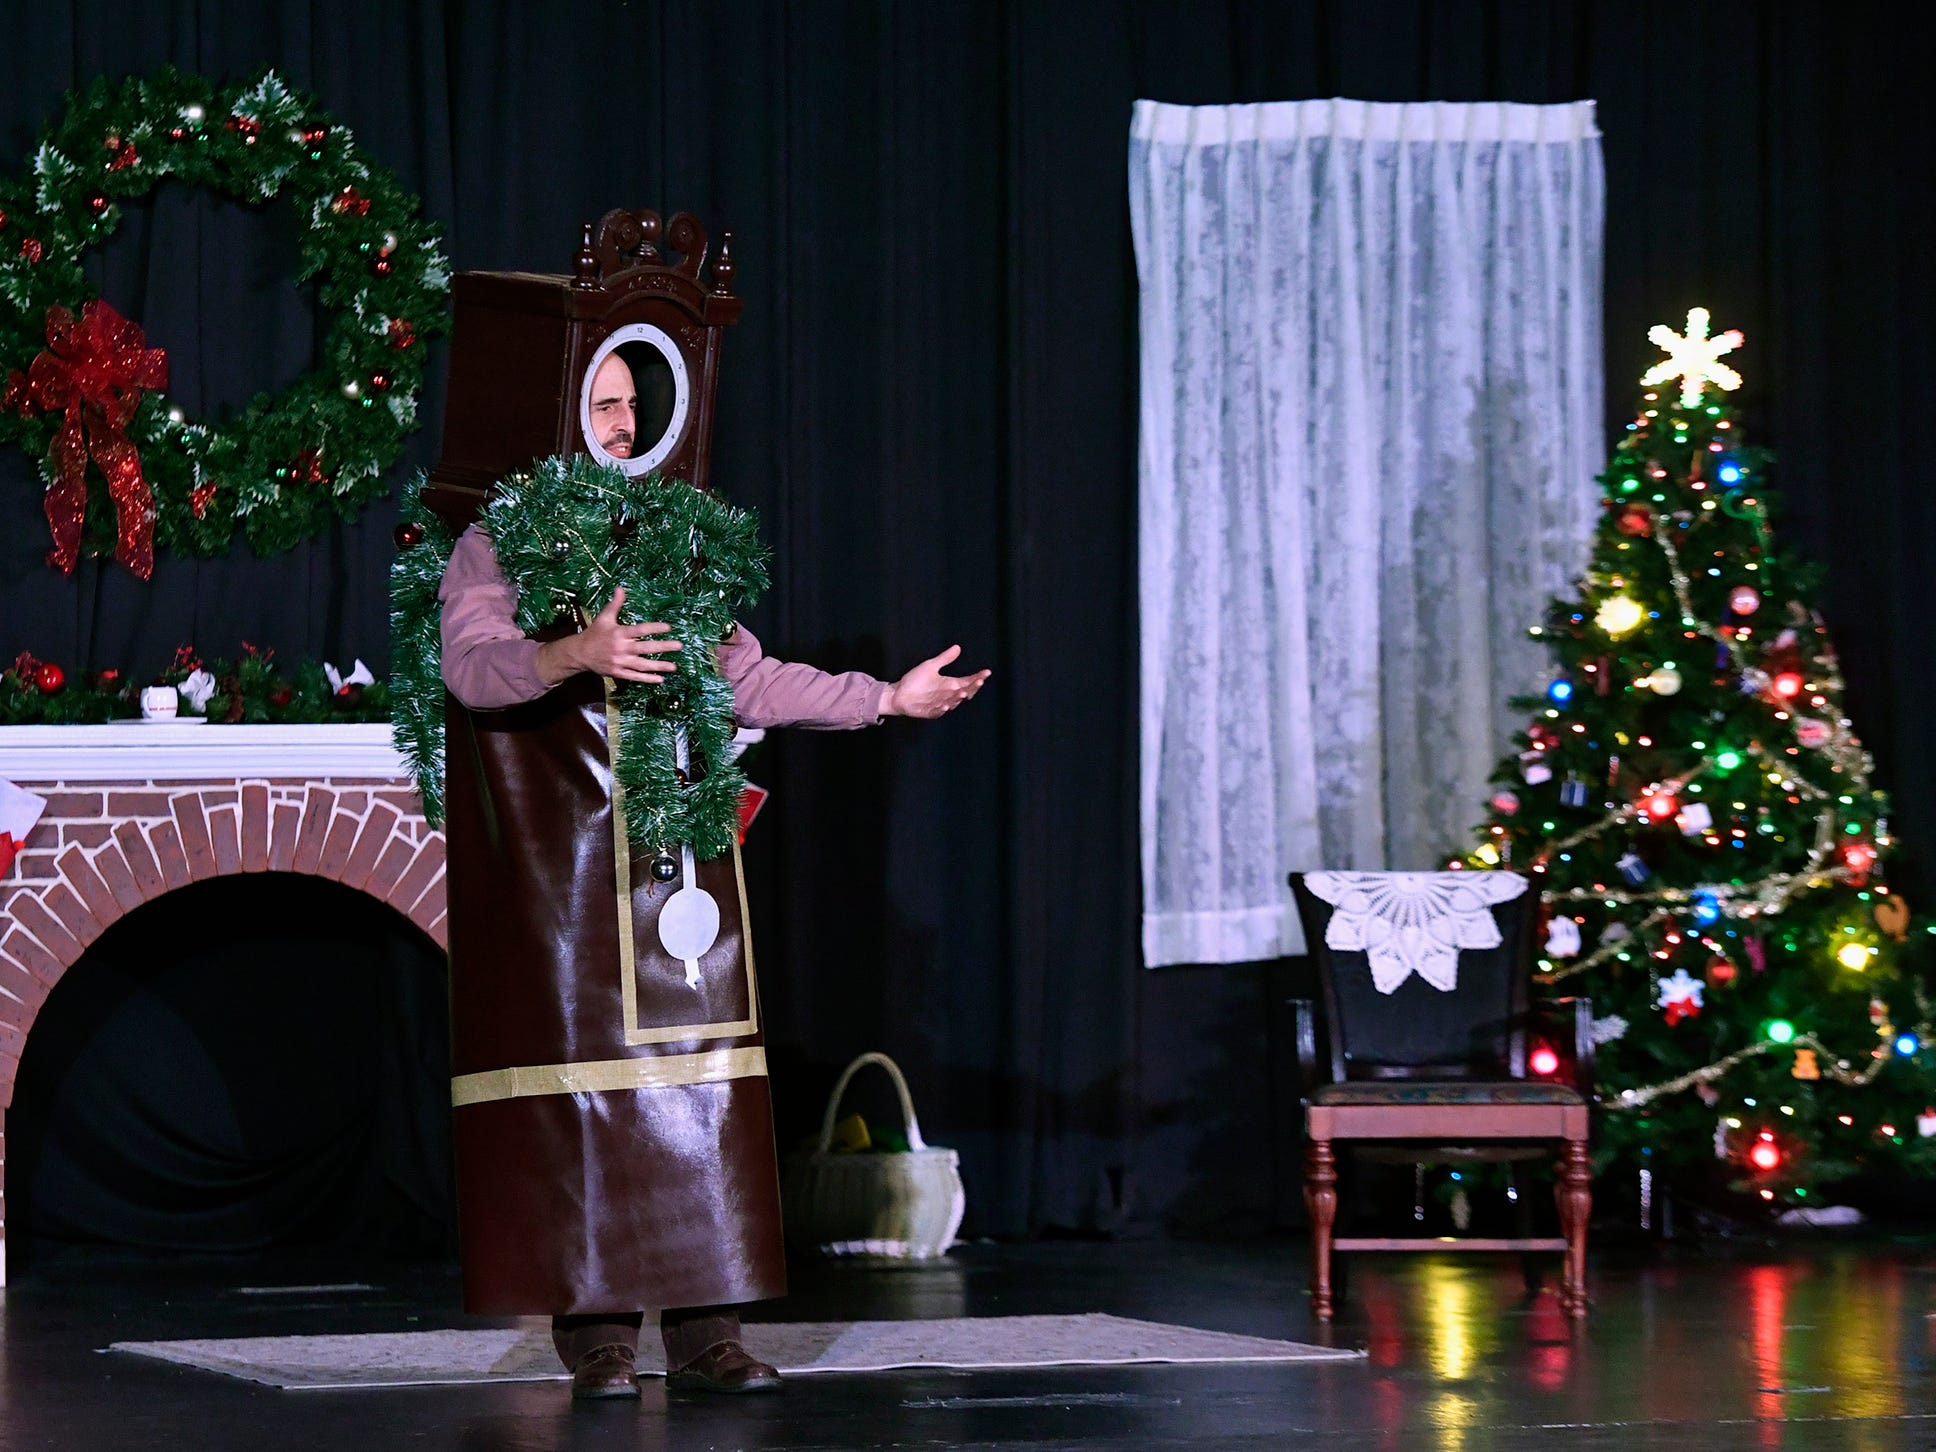 """Theater Arts for Everyone is performing """"The Night Before Christmas"""" this weekend at The York Learning Center. Show times are Dec. 7 and 8 at 7 p.m. and Dec 8 and 9 at 3 p.m.  Tickets are available at the door or through Eventbrite. Thursday, December 6, 2018.  John A. Pavoncello photo"""